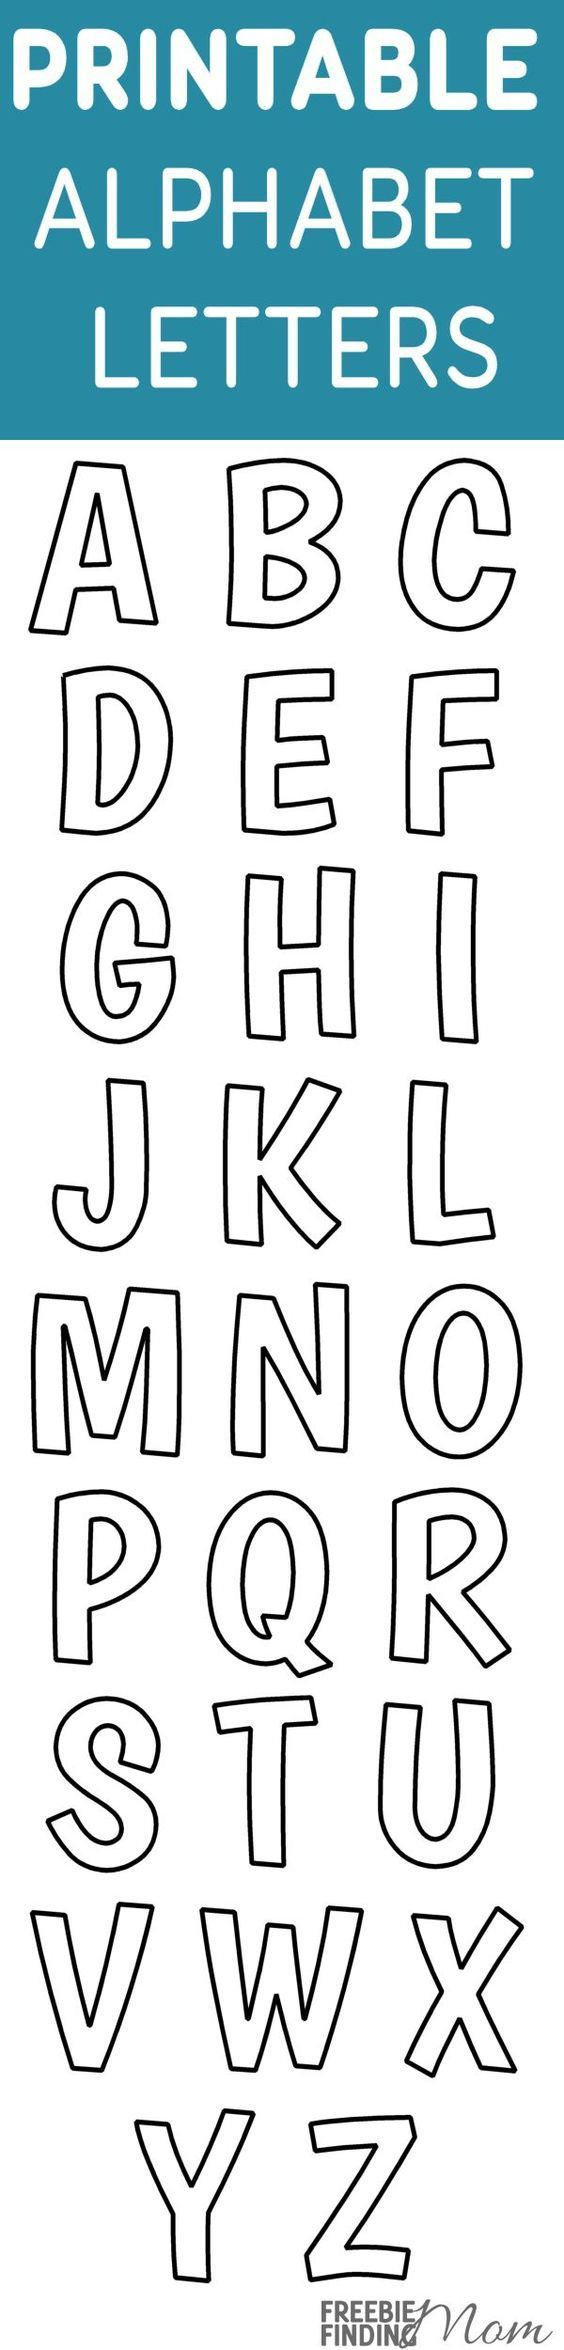 Alphabet E letters to print and cut out free - Printable Free Alphabet Templates